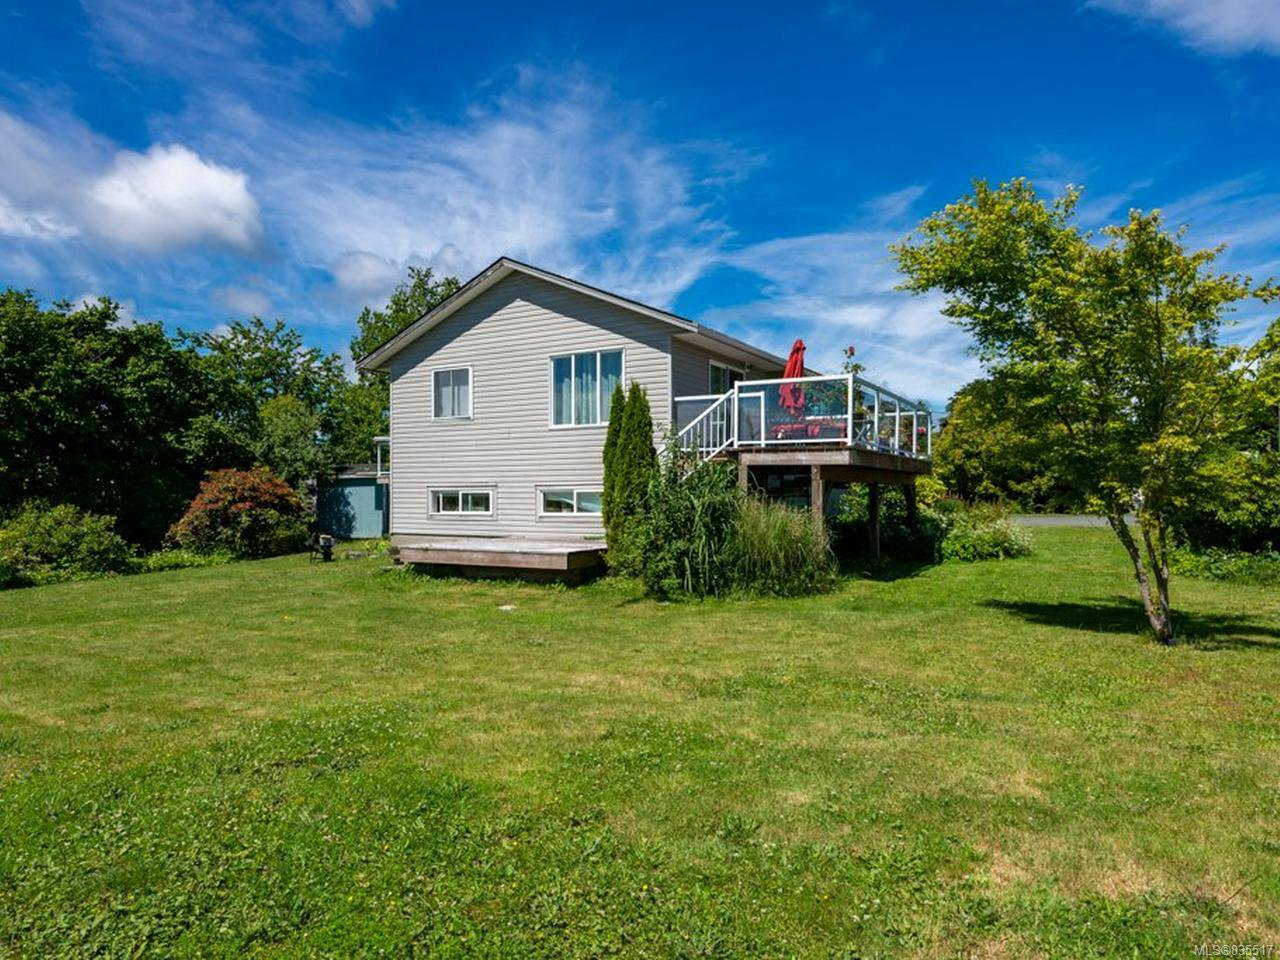 Photo 3: Photos: 109 Larwood Rd in CAMPBELL RIVER: CR Willow Point Single Family Detached for sale (Campbell River)  : MLS®# 835517